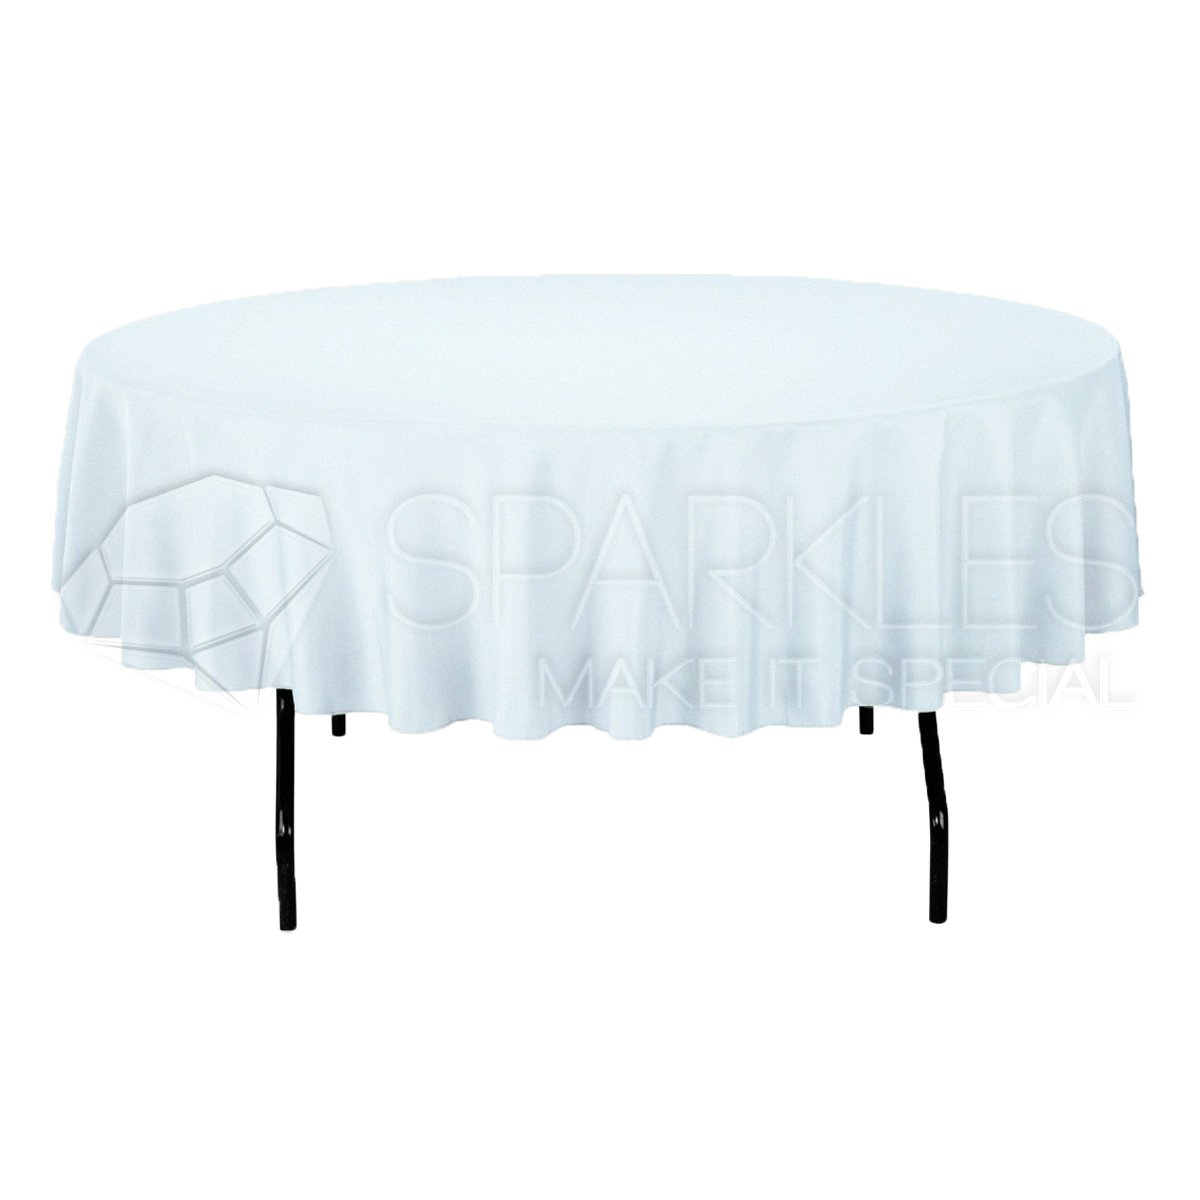 Sparkles Make It Special 5-pcs 90'' Inch Round Polyester Cloth Fabric Linen Tablecloth - Wedding Reception Restaurant Banquet Party - Machine Washable - White